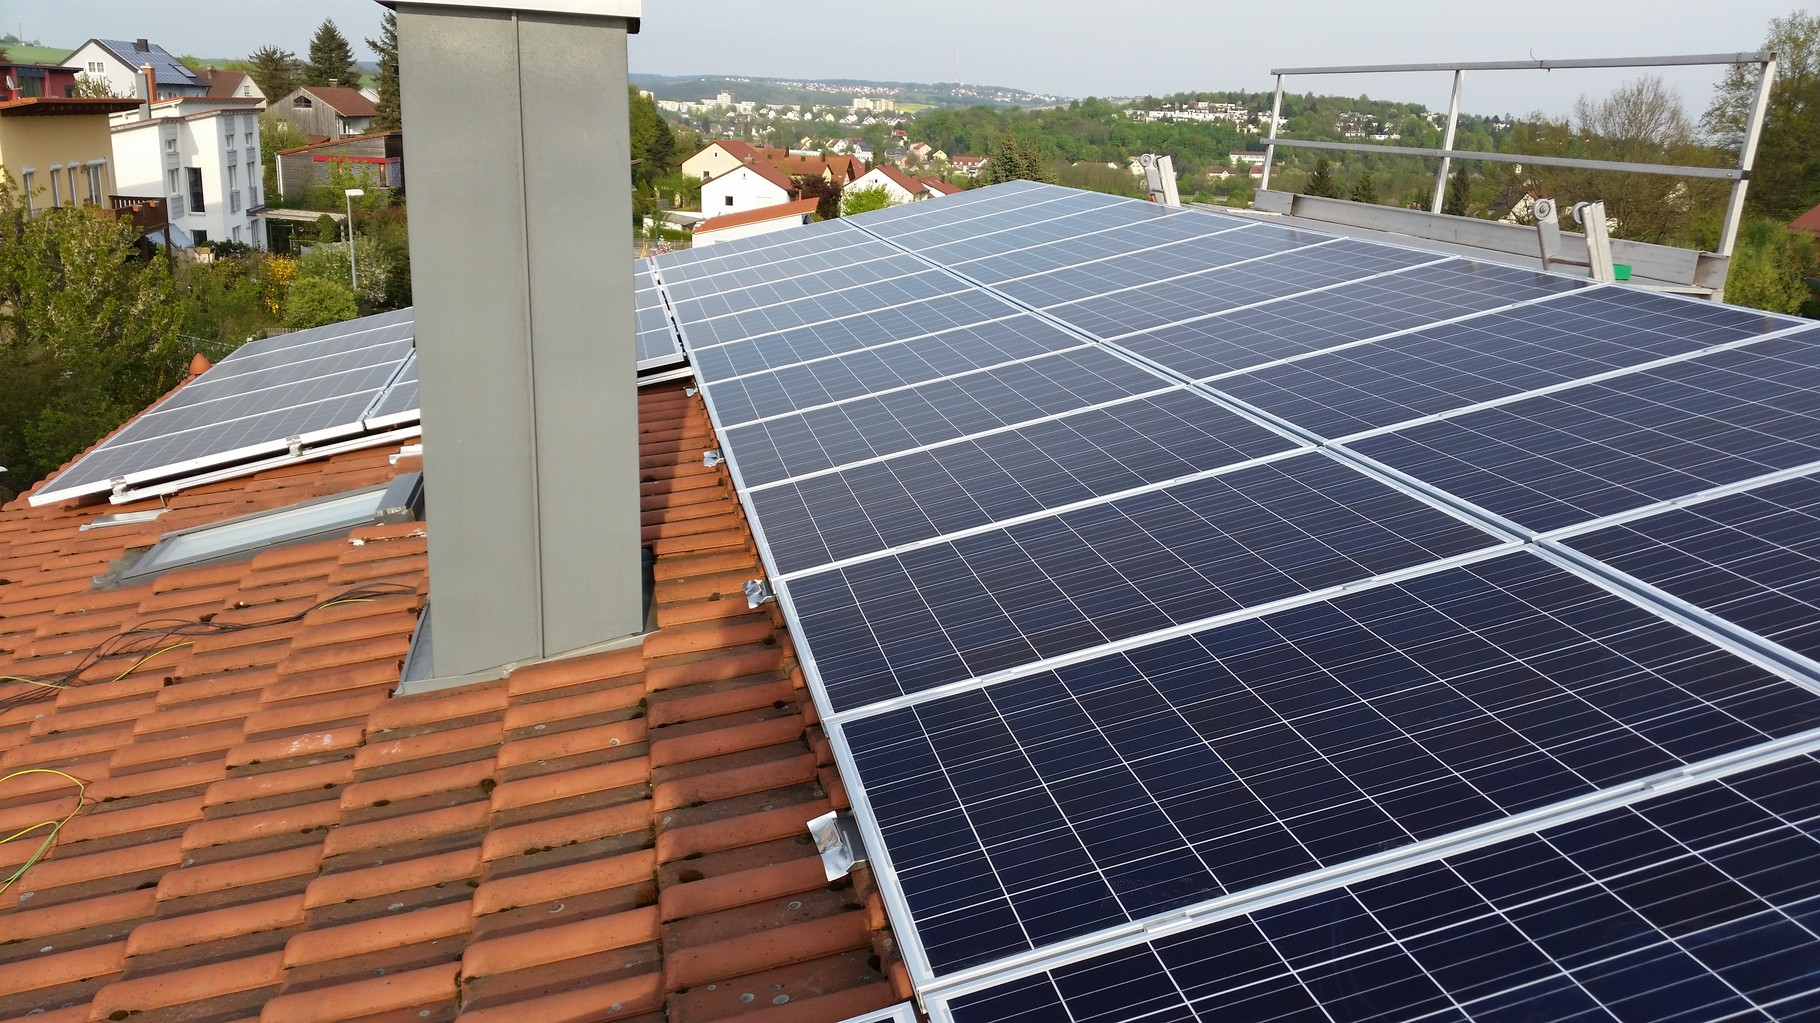 10 kWp Photovoltaikanlage 93138 Lappersdorf SHARP Modulen